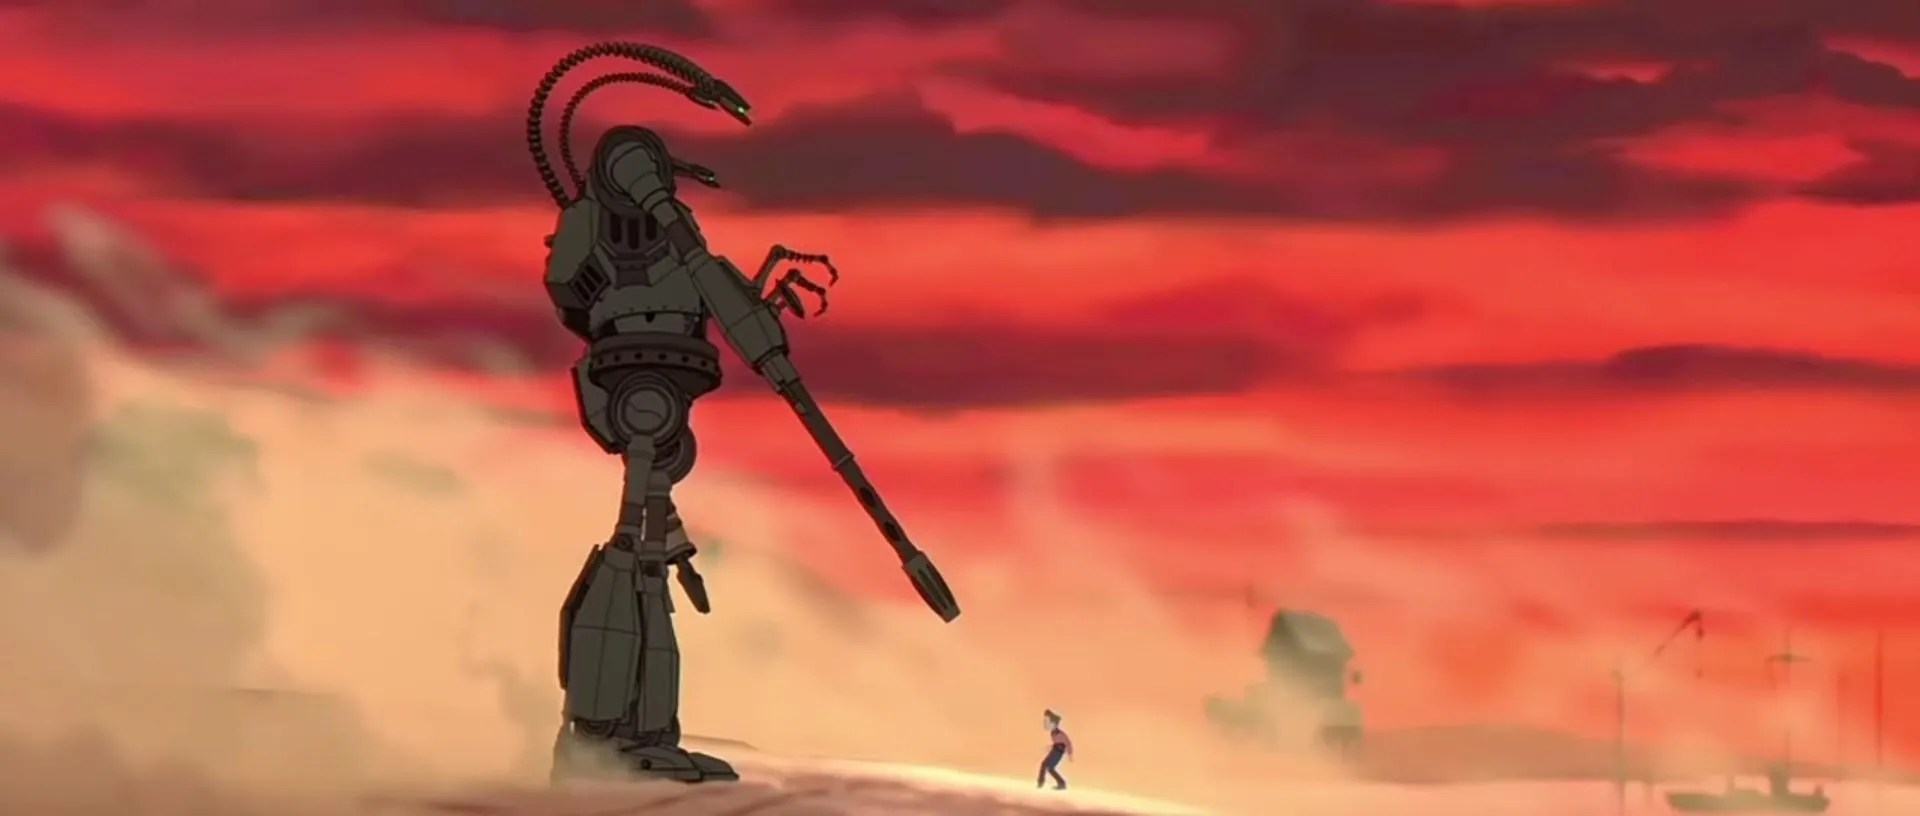 Transformers Animated Wallpaper The Iron Giant Review Brad Bird S Classic Lives On Collider